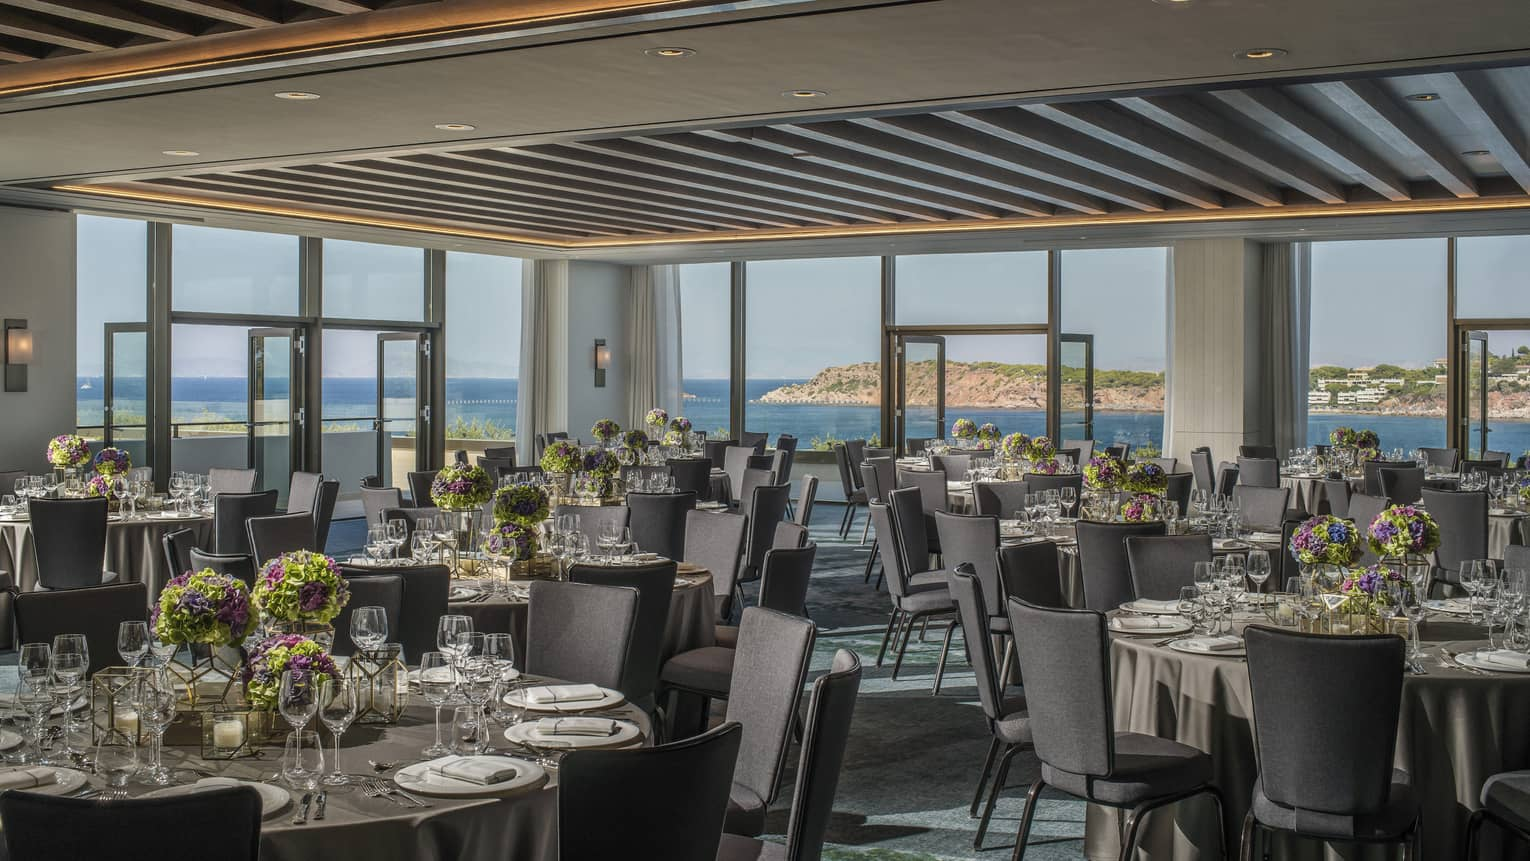 Light filled Nafsika Ballroom with round tables, grey chairs, flowers, wine glasses overlooking ocean